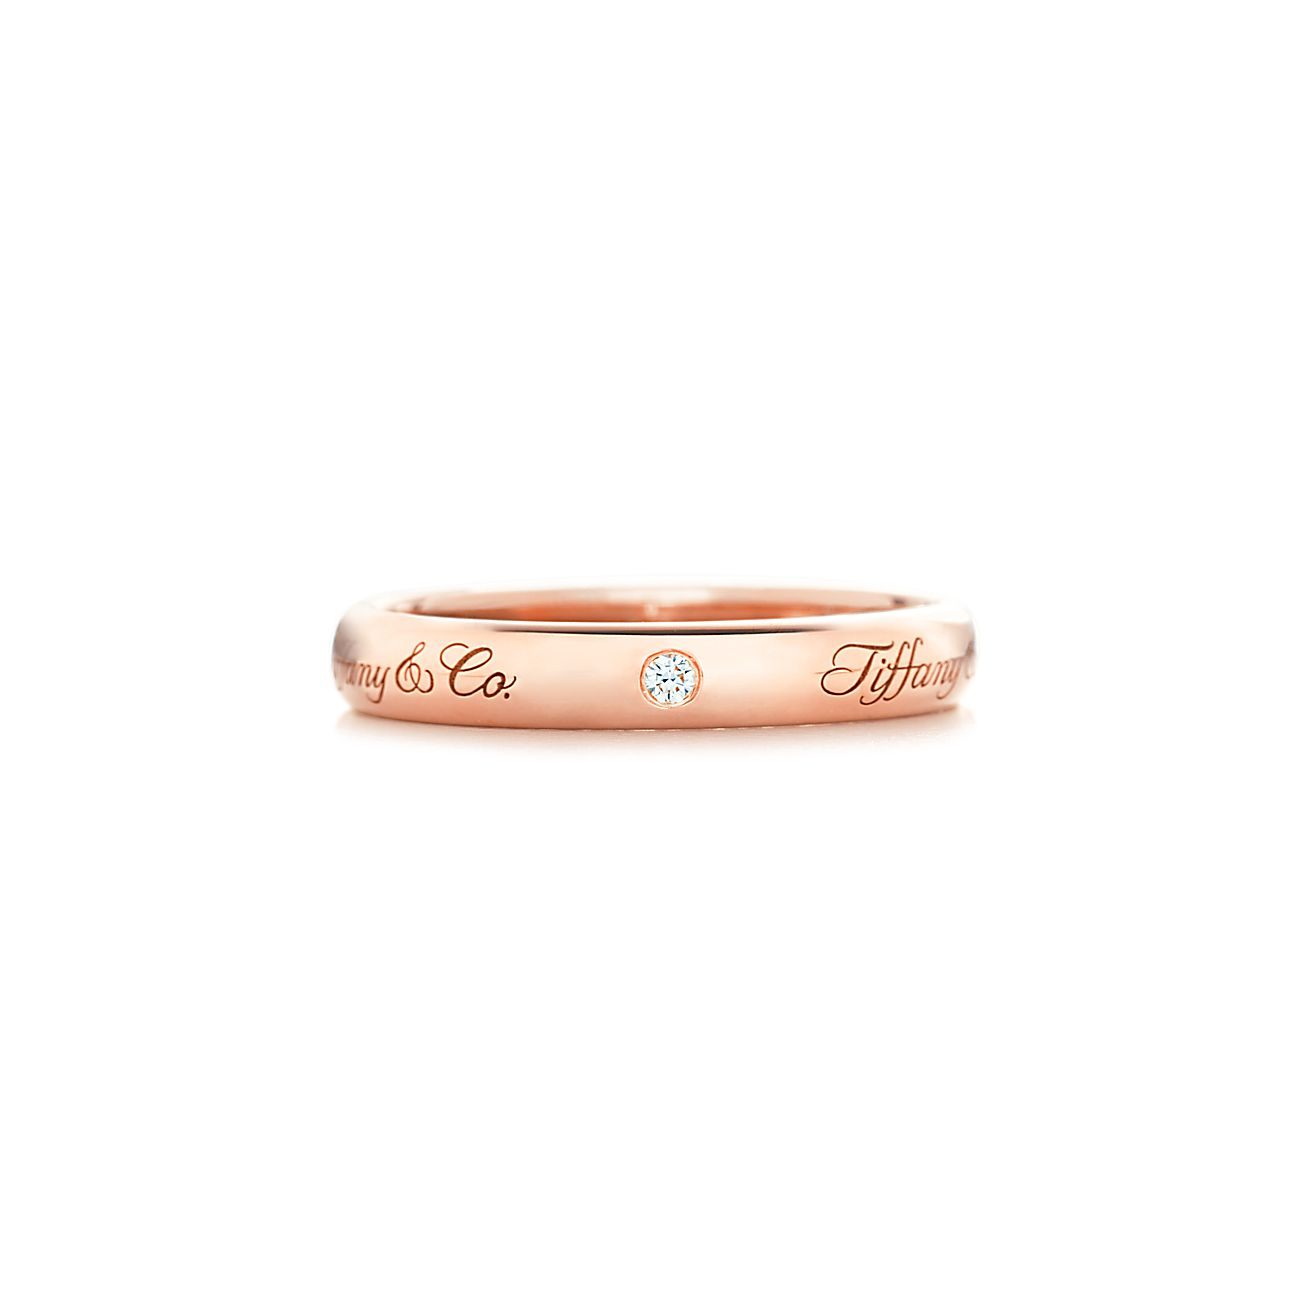 Tiffany Notes Wide Ring Gold